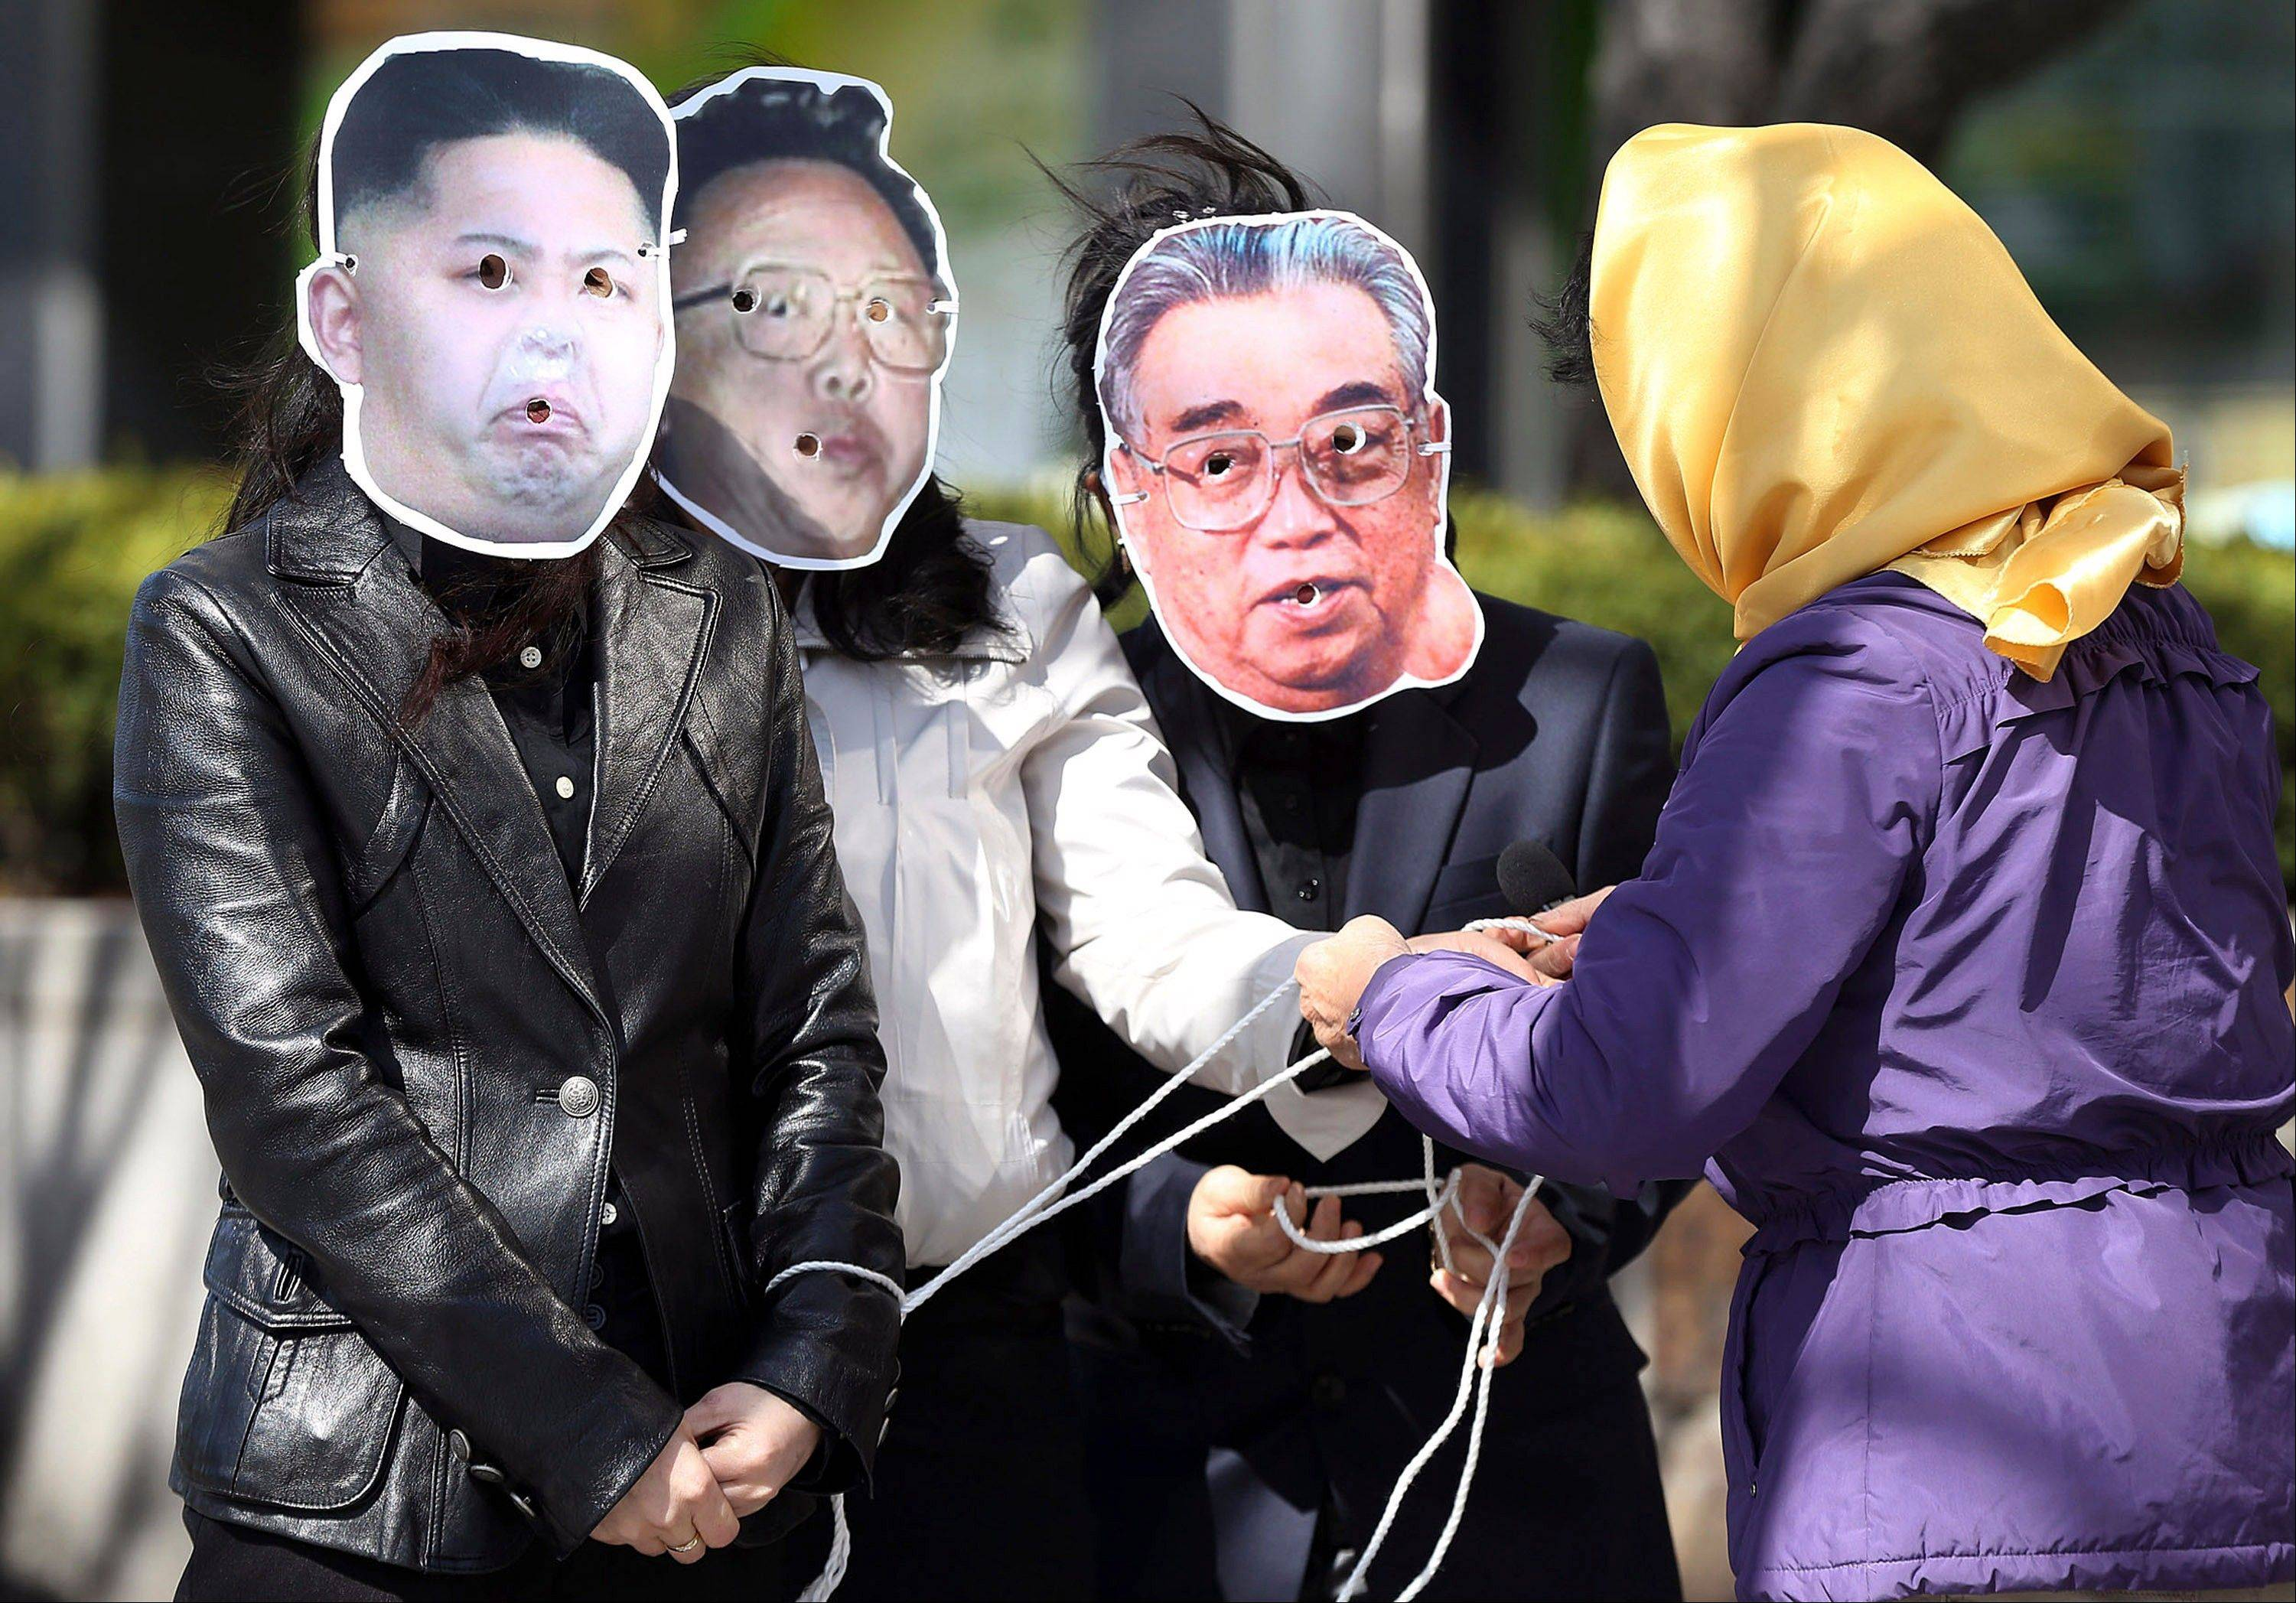 A North Korean defector ties hands of South Korean activists wearing masks of North Korean leader Kim Jong Un, left, late North Korean leader Kim Jong Il, center, and Kim Il Sung, the late founder of North Korea, with ropes during a rally against North Korea on the eve of 101st anniversary of founder Kim�s birthday, in Seoul, South Korea, Sunday.